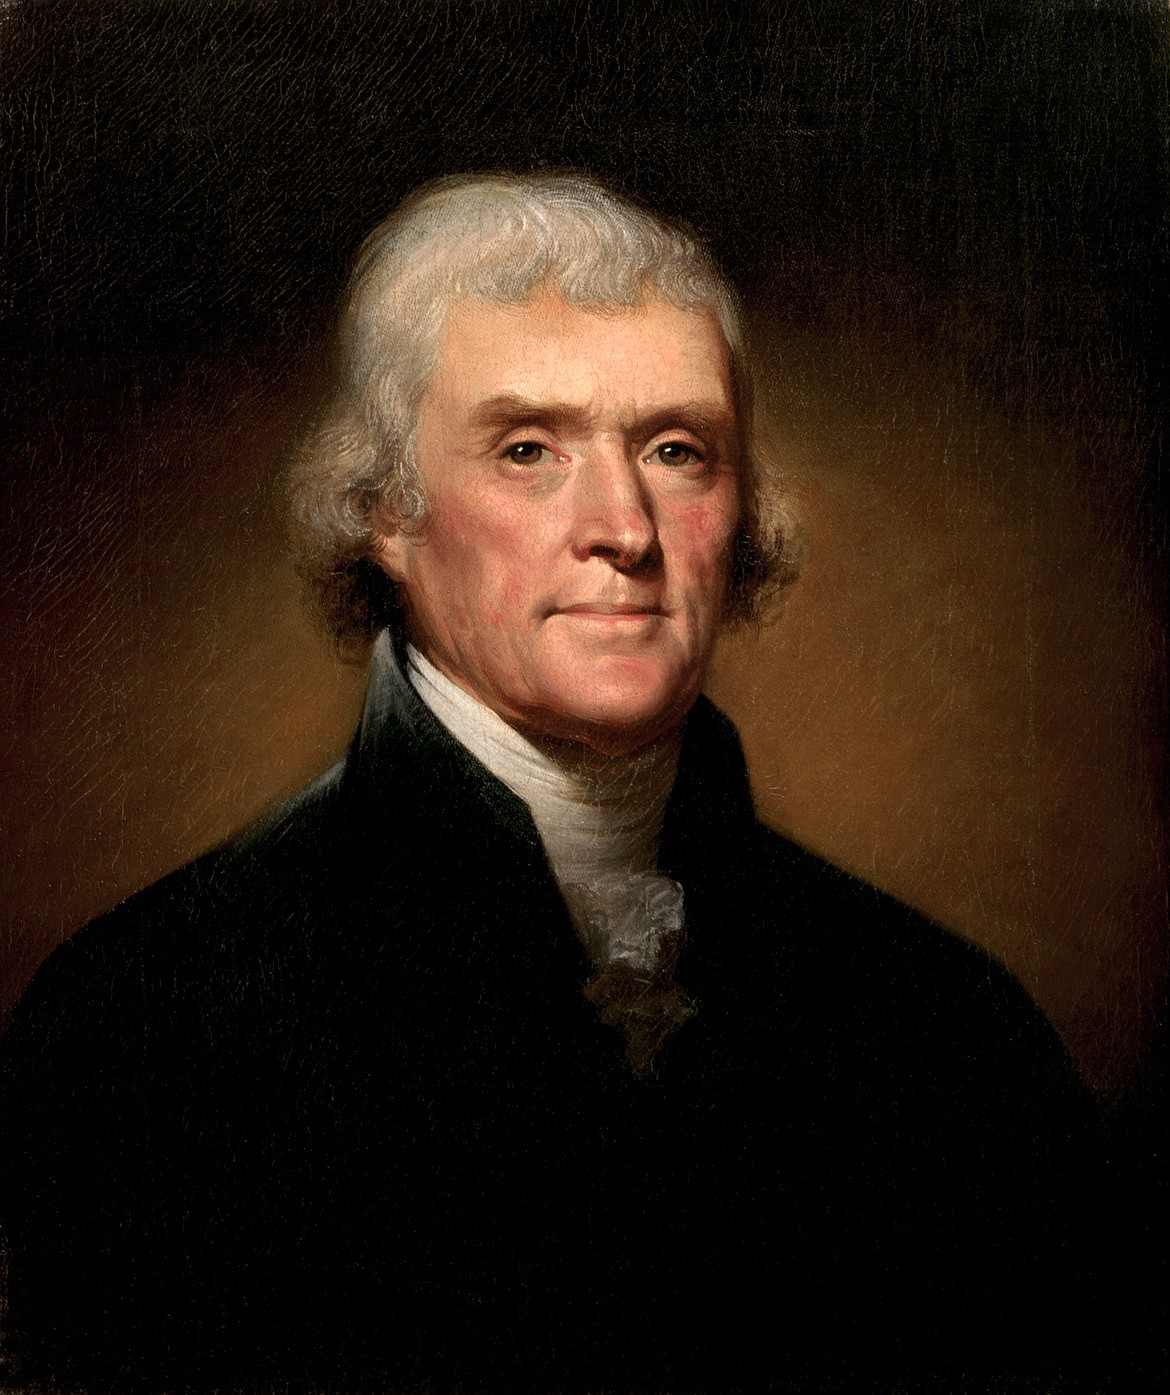 President Thomas Jefferson (1743-1826) ordered a stop to Barbary piracy against American Ships.